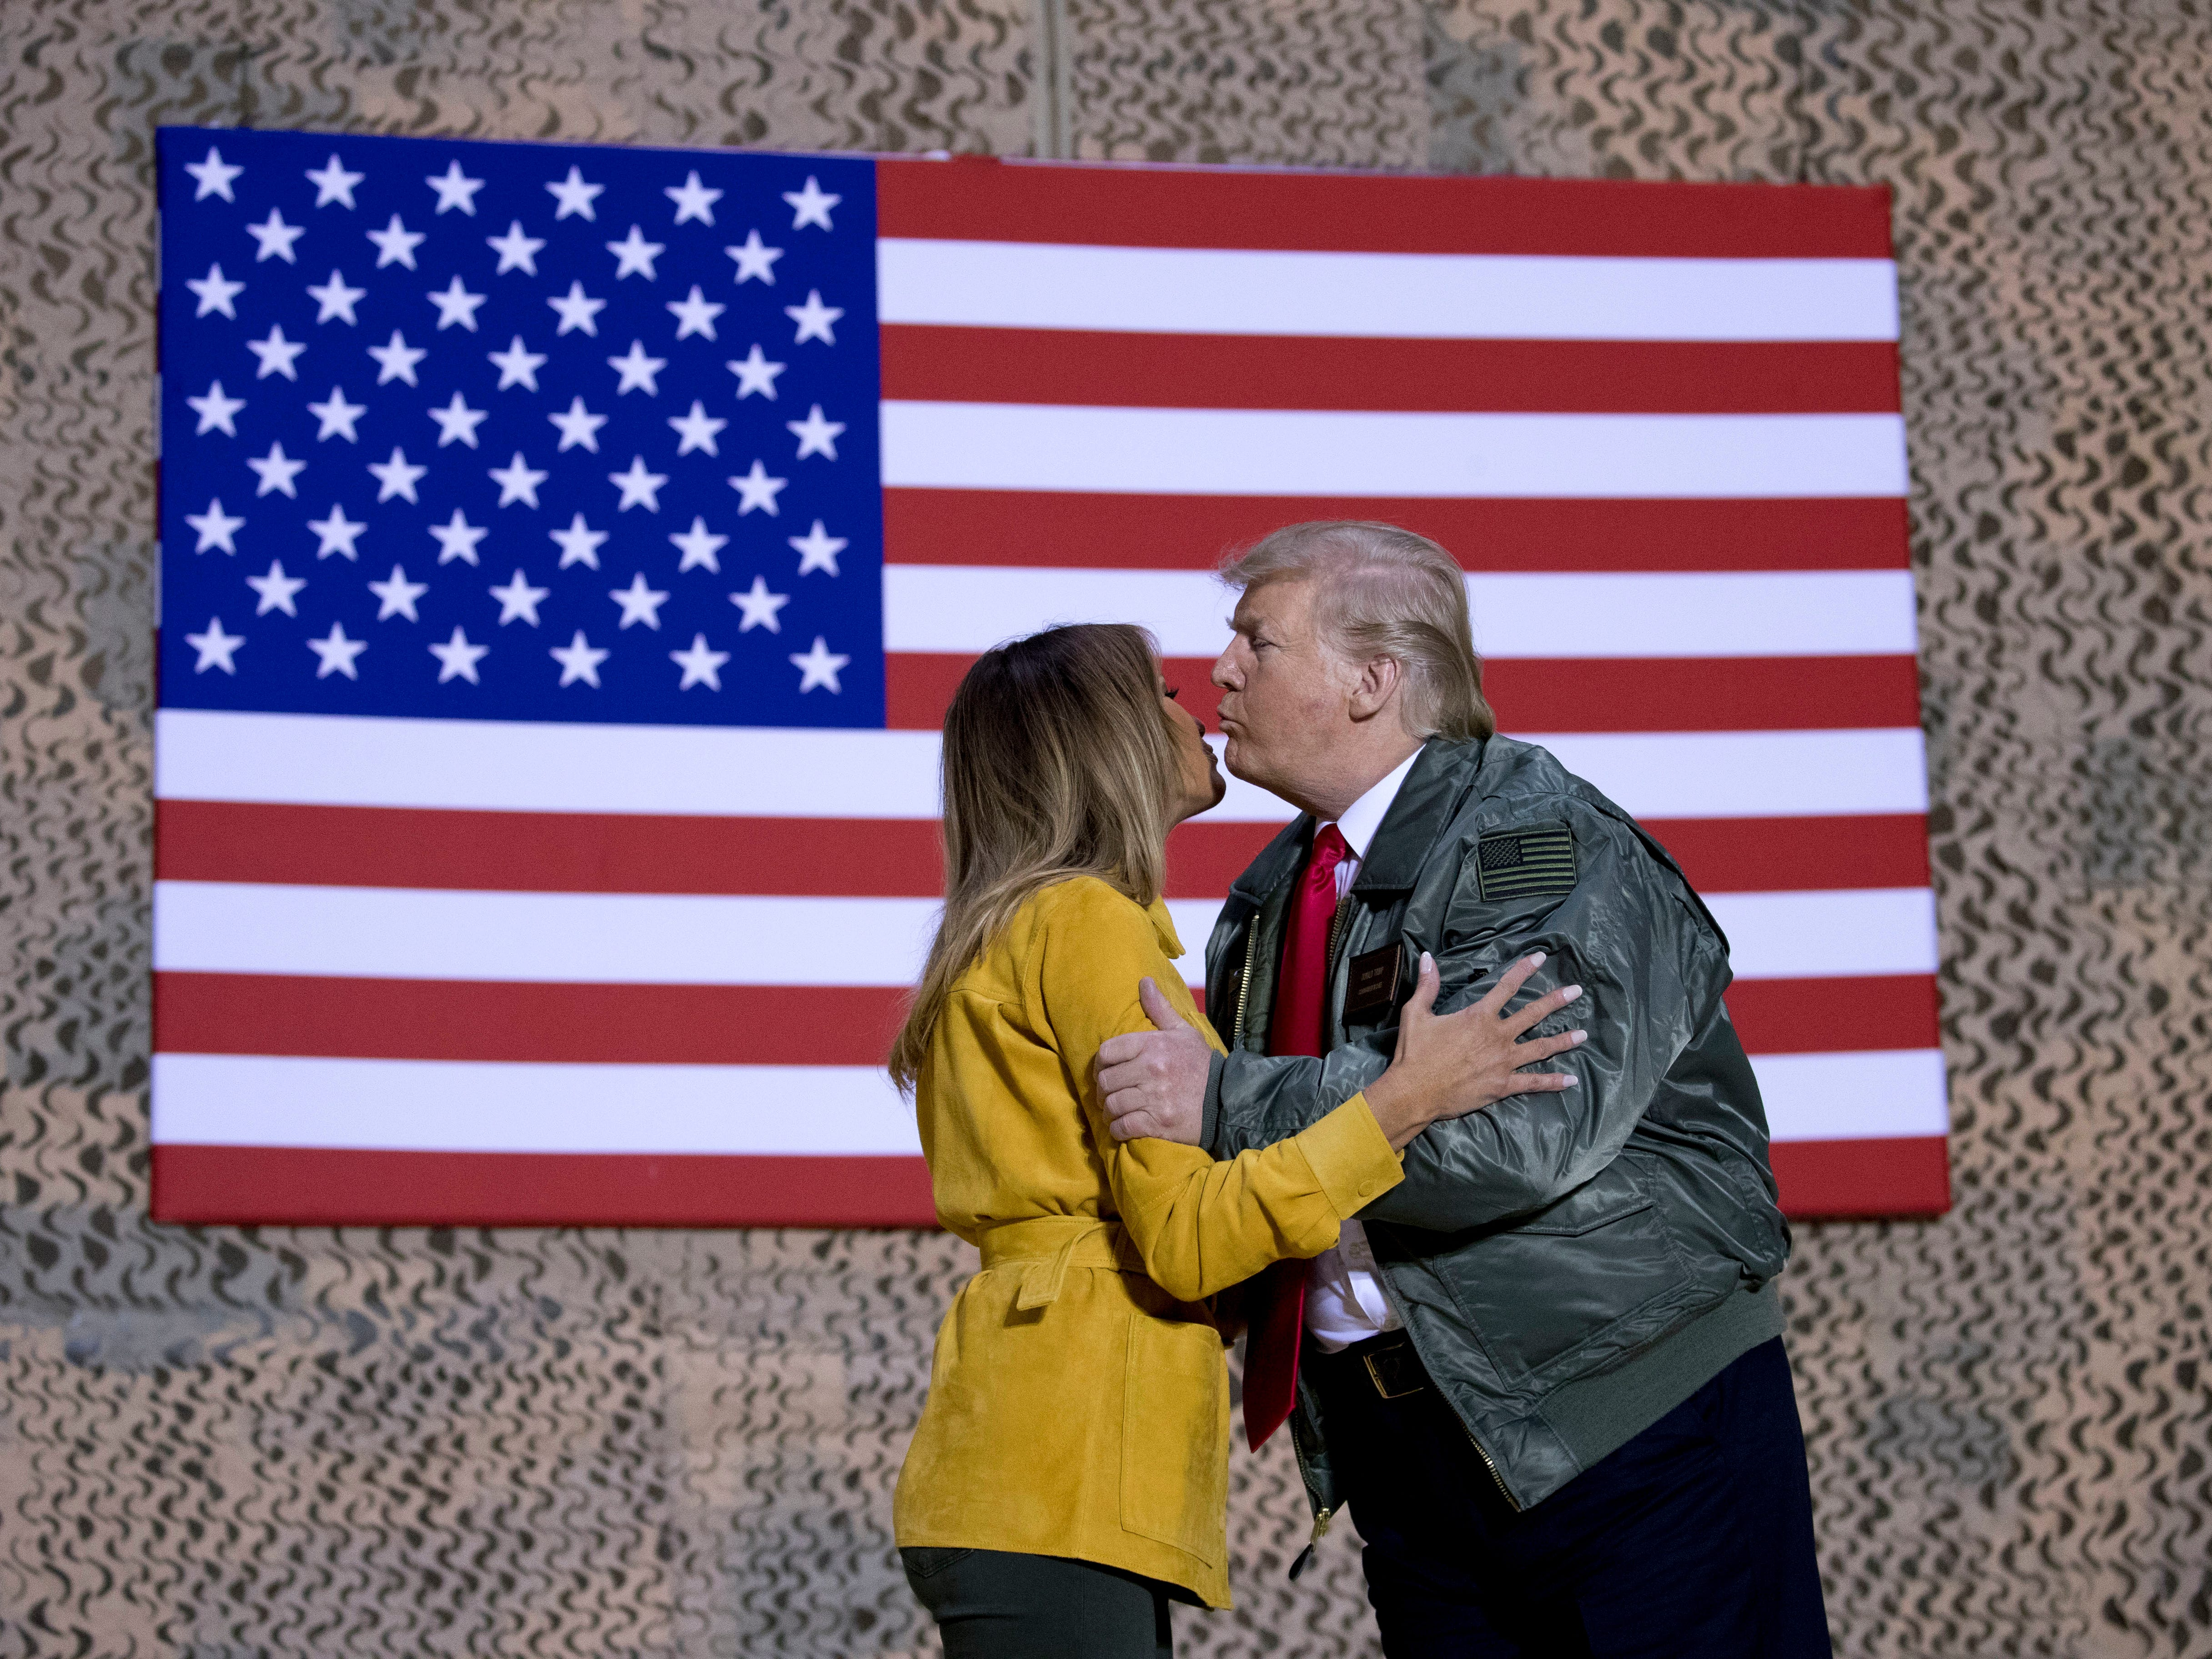 President Donald Trump kisses first lady Melania Trump during a hanger rally at Al Asad Air Base, Iraq, Wednesday, Dec. 26, 2018. President Donald Trump, who is visiting Iraq, says he has 'no plans at all' to remove US troops from the country. (AP Photo/Andrew Harnik) ORG XMIT: IRQA202